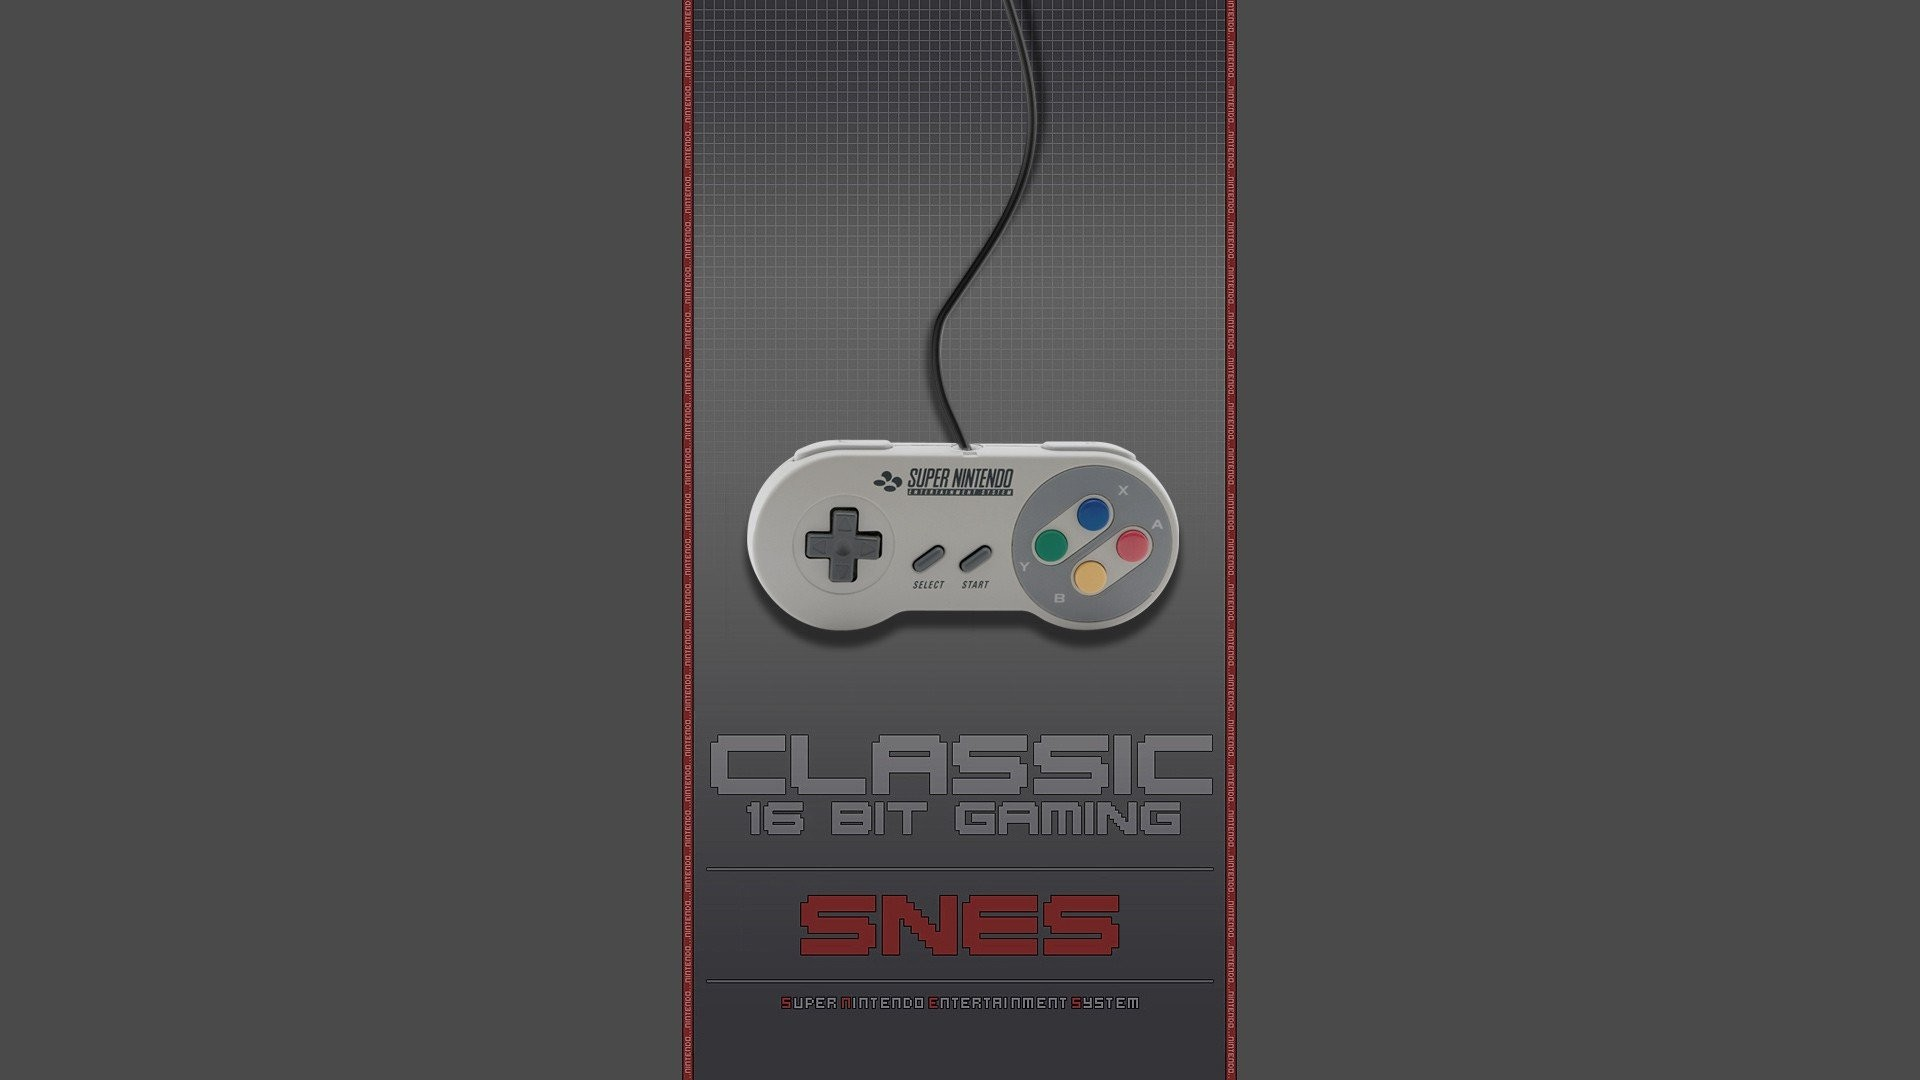 1920x1080 Video games Classic Super Nintendo 16-bit wallpaper |  | 253995 |  WallpaperUP